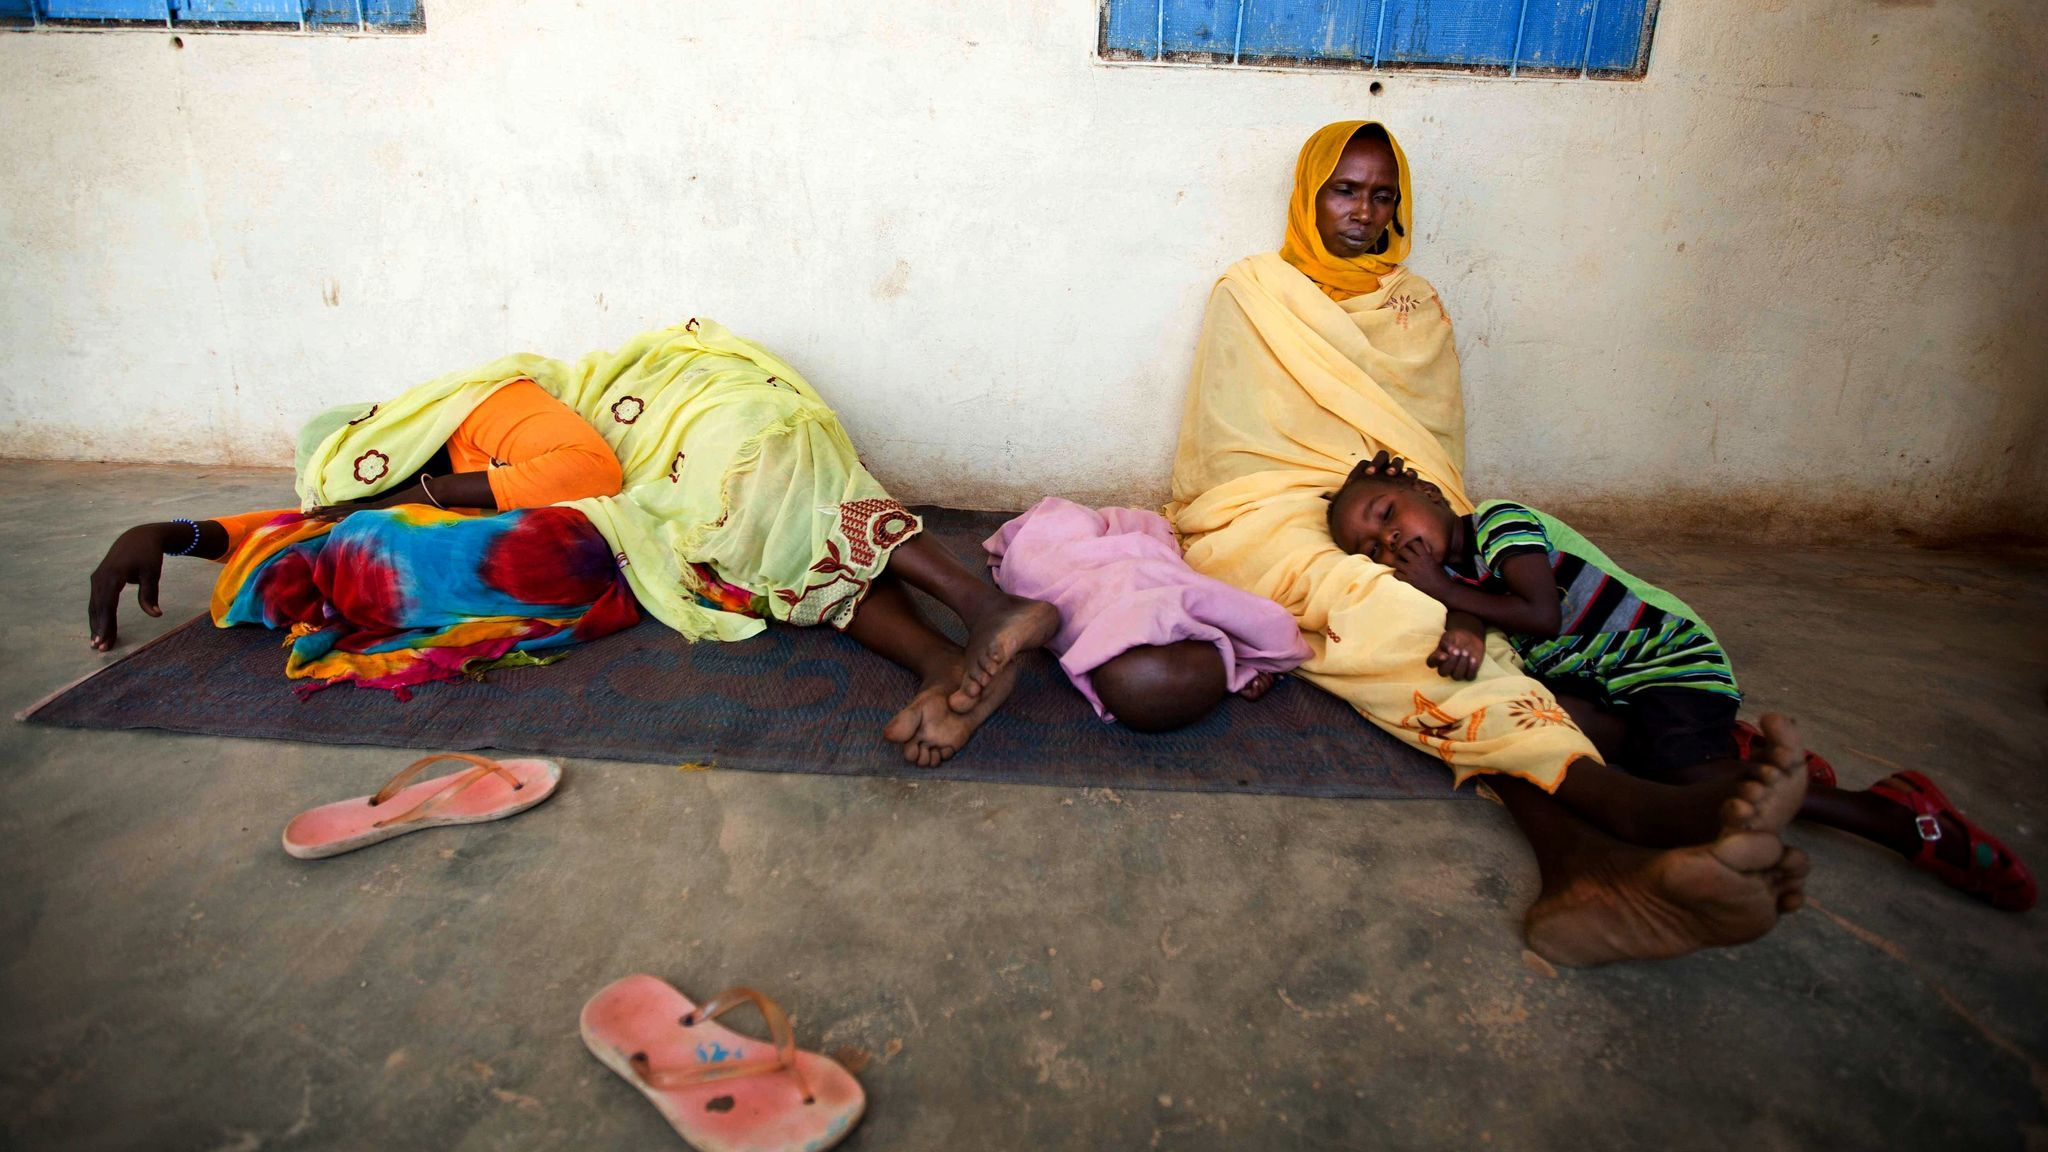 Women & children waiting for treatment in North Darfur, Sudan.